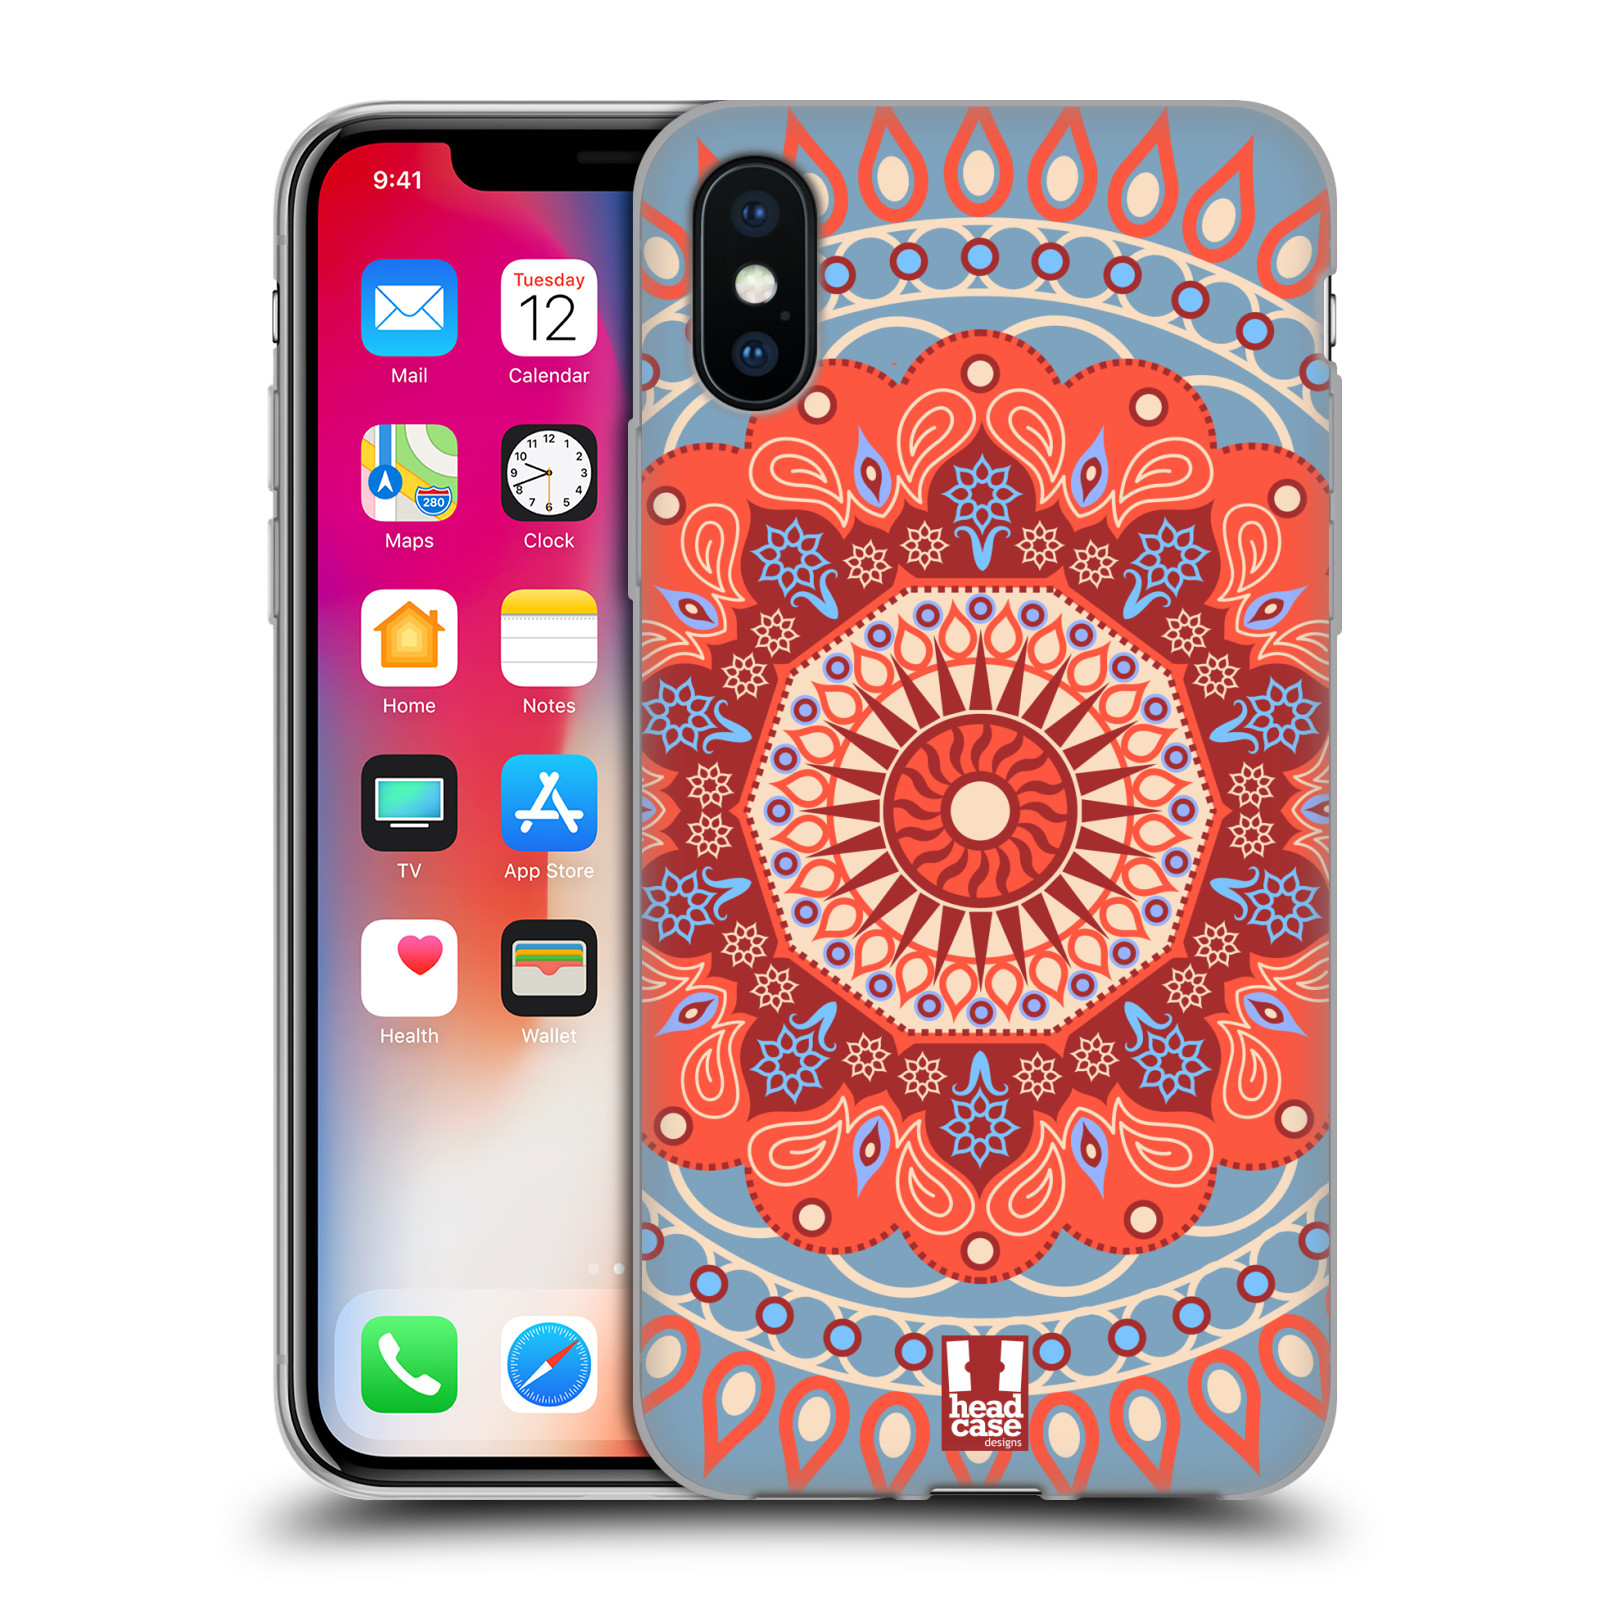 Disenos-de-Mandala-Gel-caso-HEAD-CASE-para-telefonos-APPLE-iPHONE